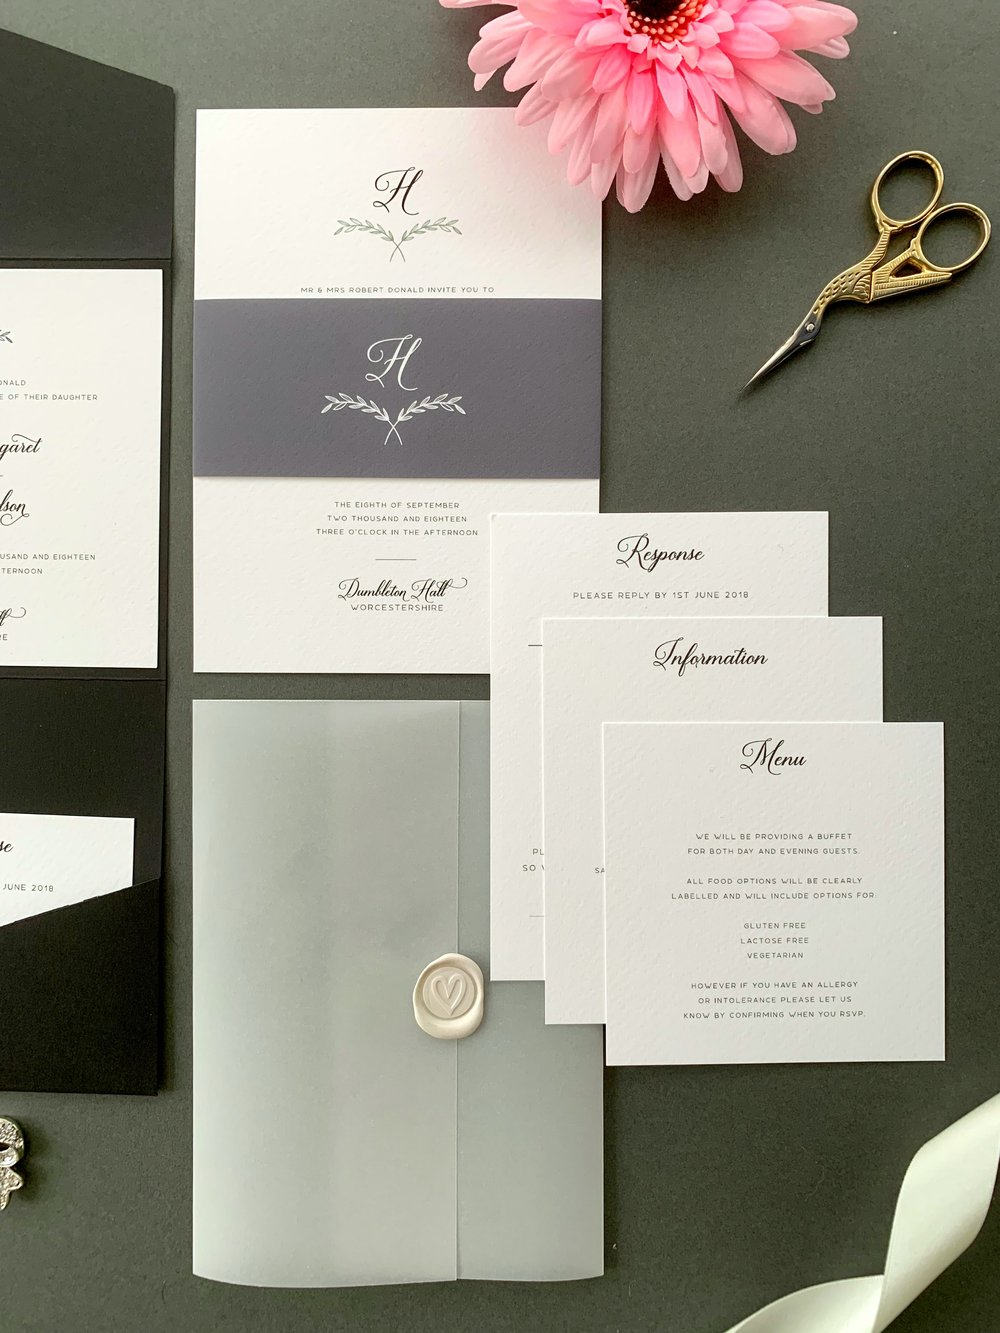 Paddington Invitation Suite in Jet Black and tiber with Fleet Grey Paper Belly and Pearl Ivory Wax Seal on Vellum Jacket